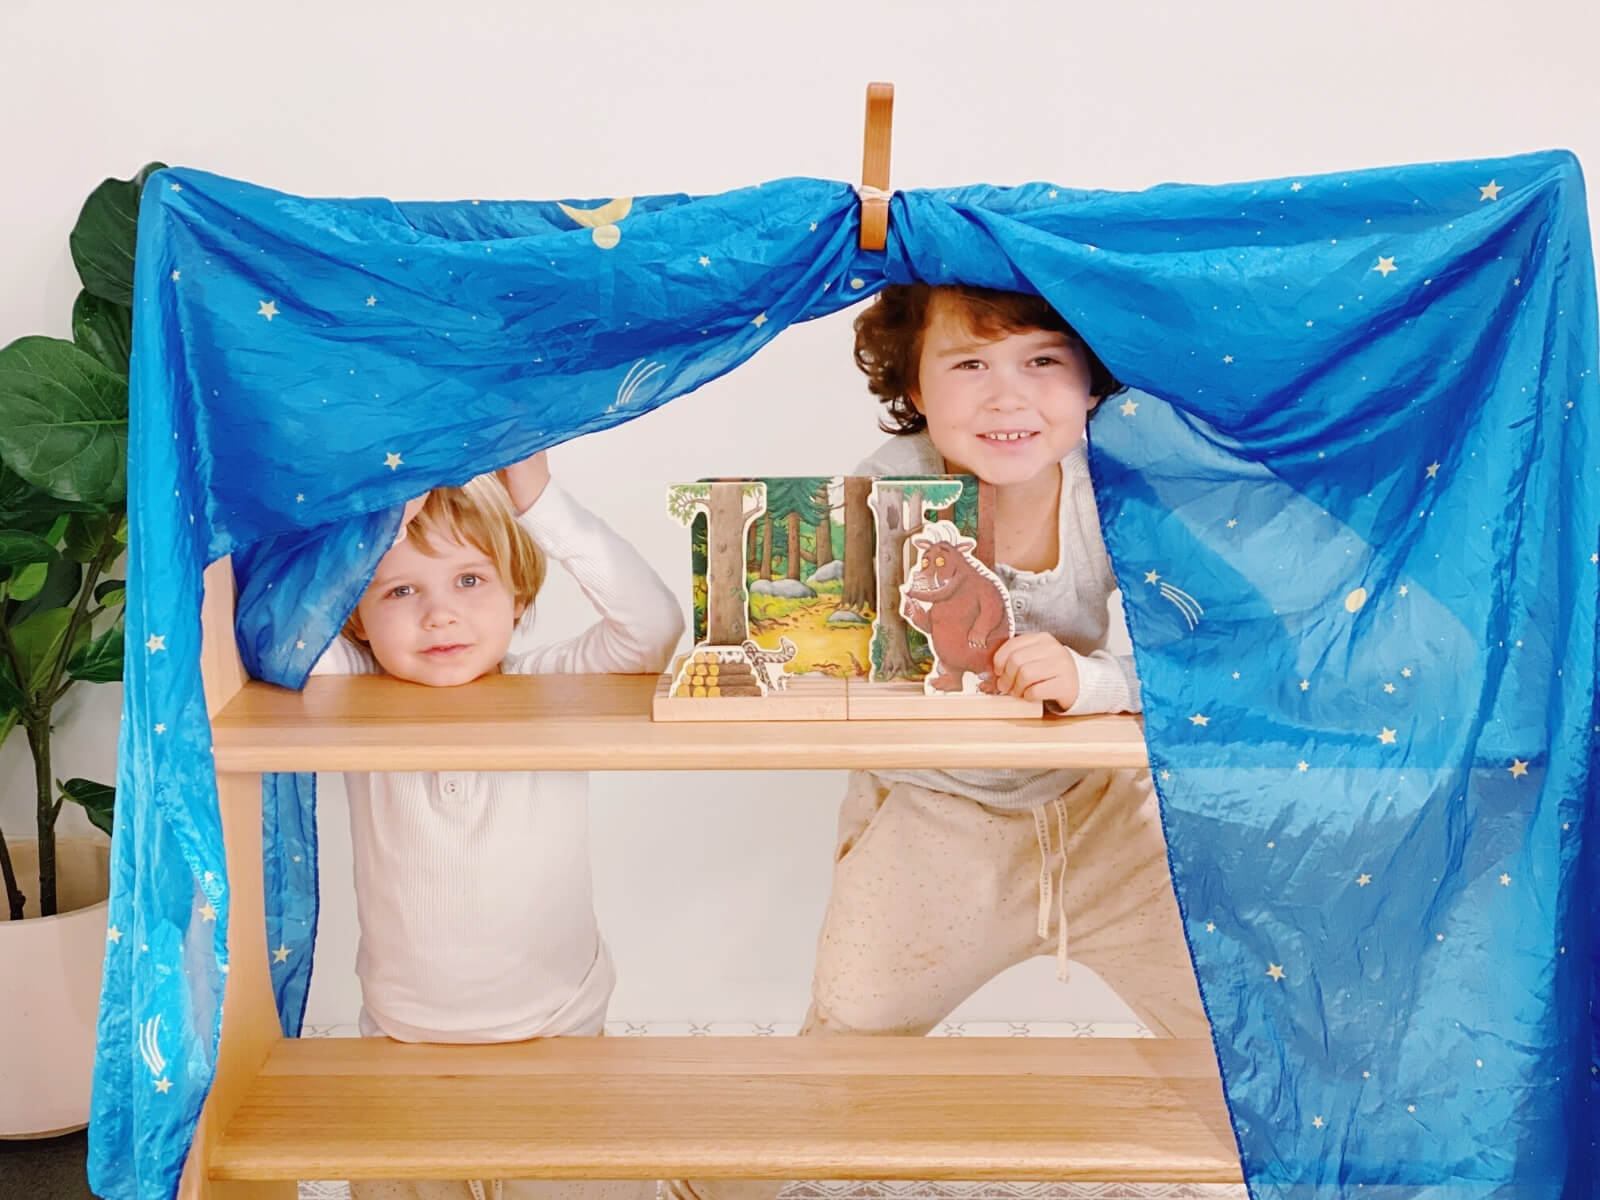 Many learning outcomes are possible through bookish play